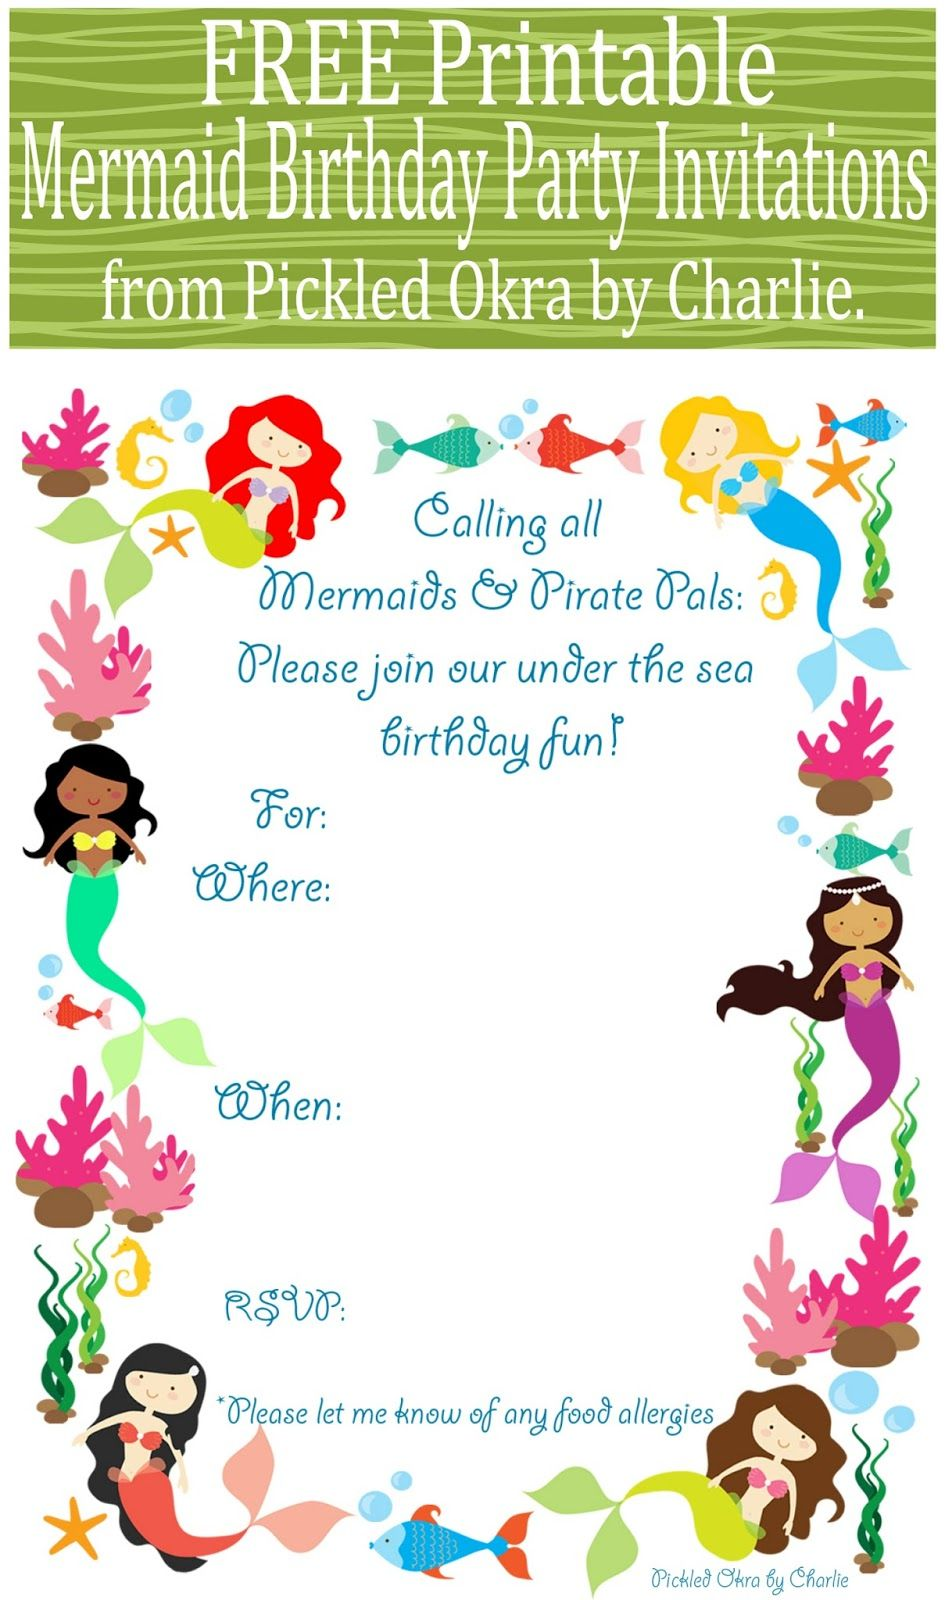 pickled okra by charlie  mermaid bithday party invitations